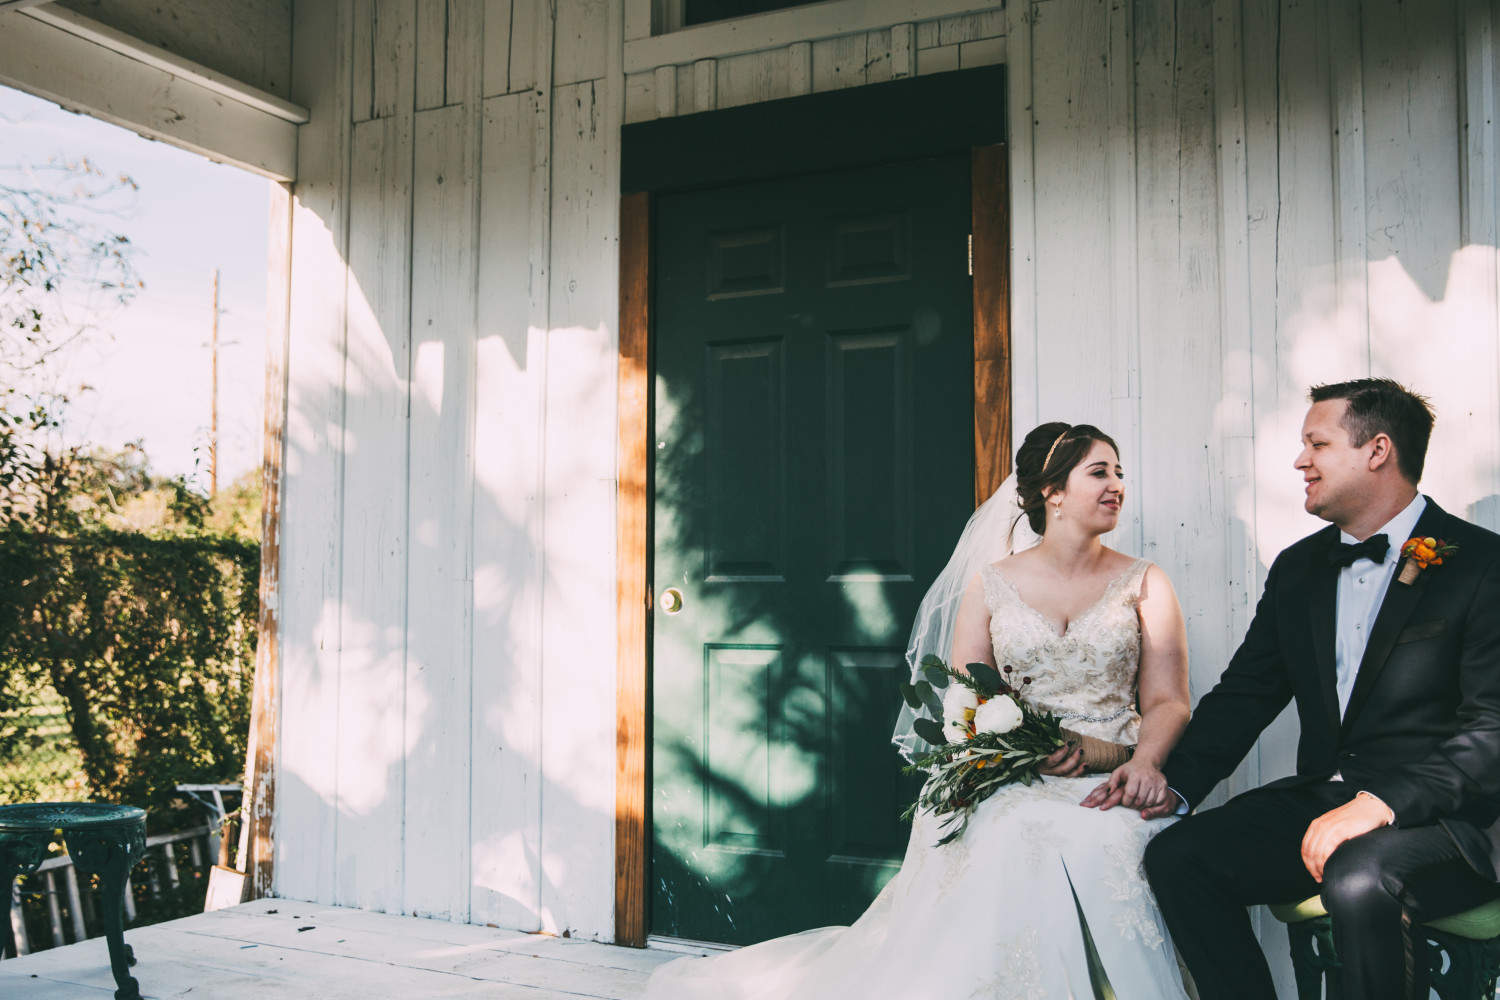 Texas Winter Wedding, Austin,TX, The Inn at Old School, bride and groom portraits